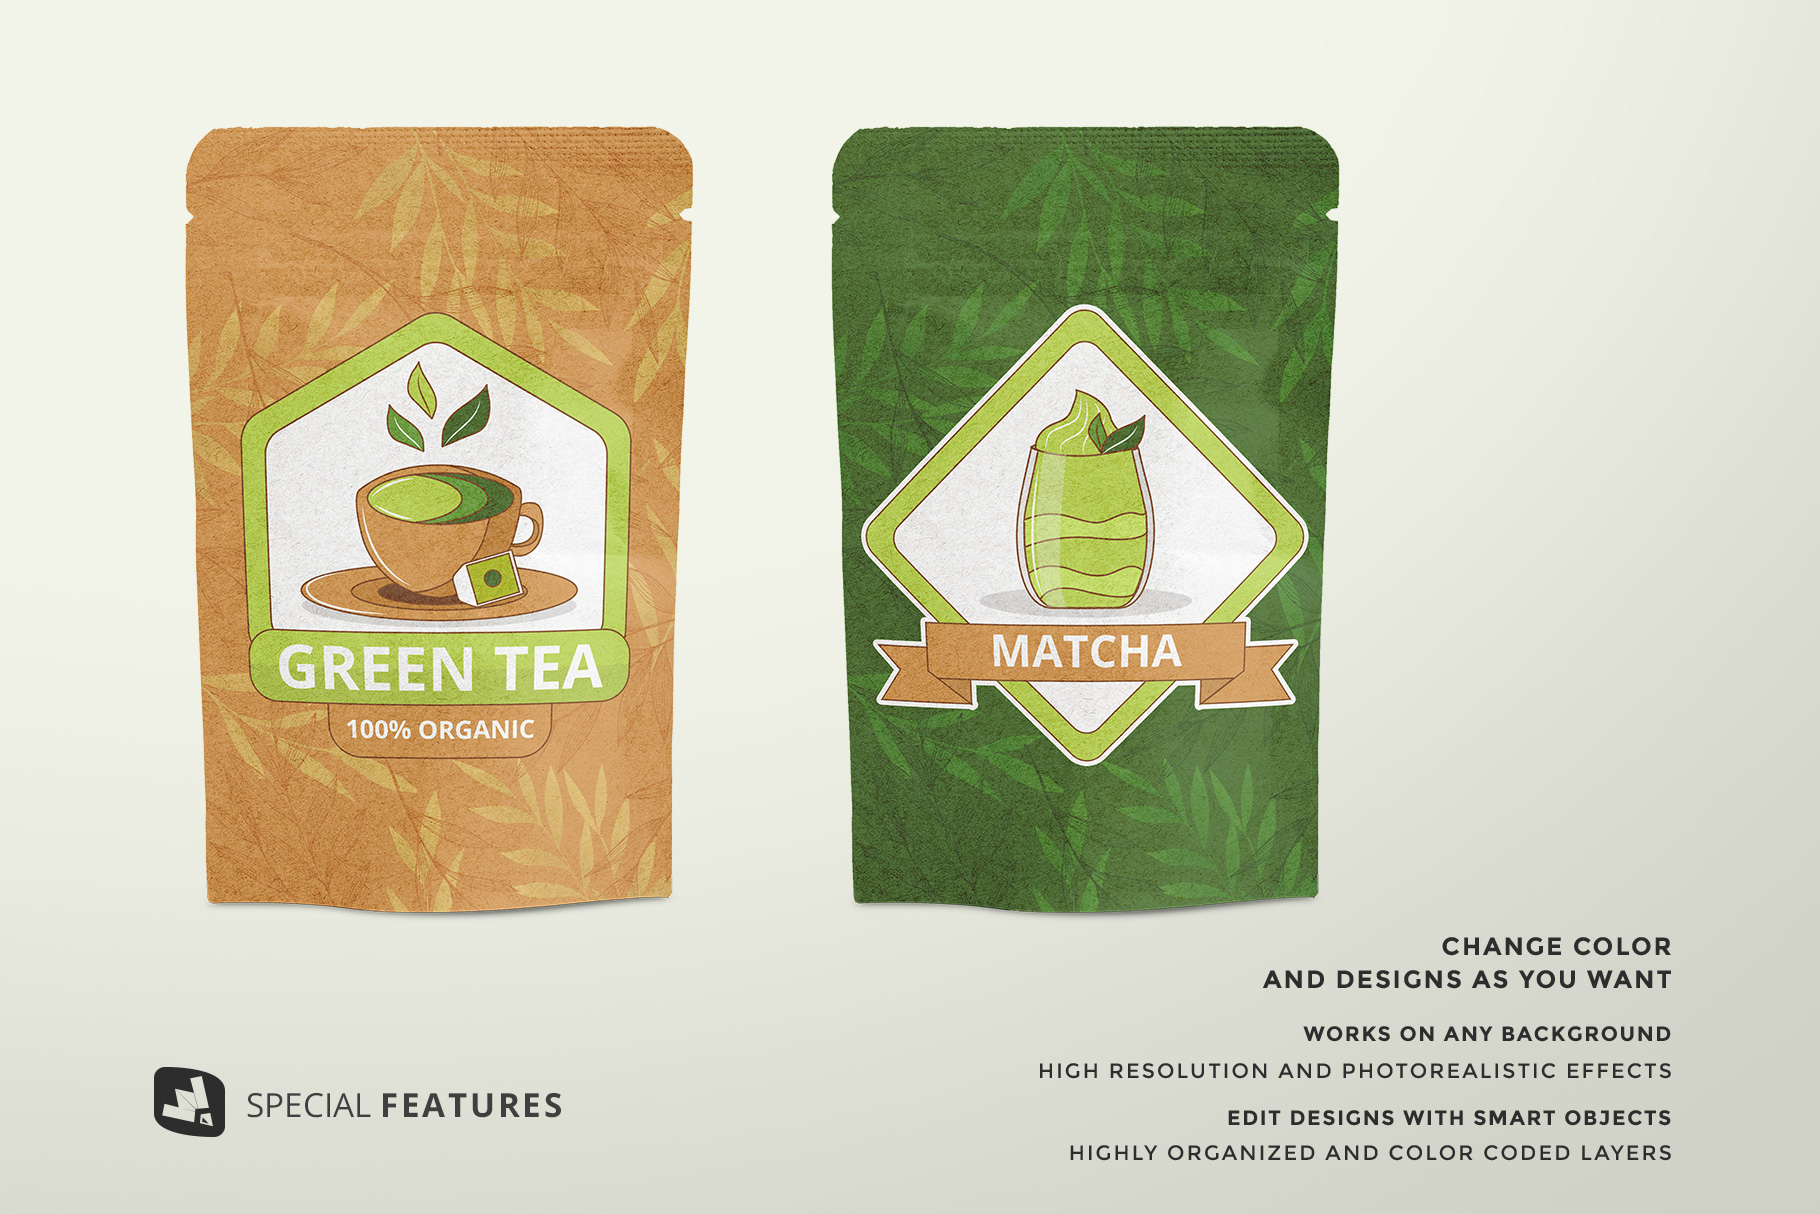 spacial features of the craft paper pouch packaging mockup